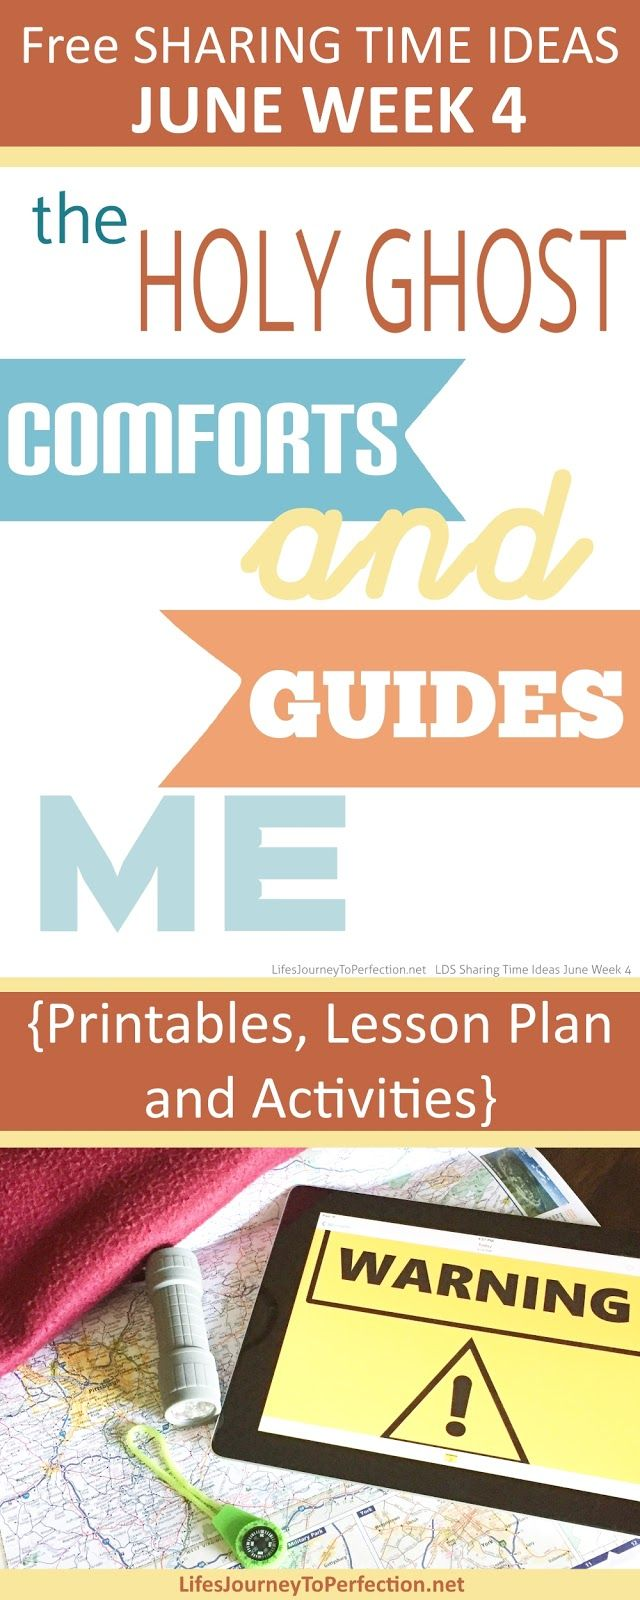 185 best Church images on Pinterest | Lds primary, Activity days and ...